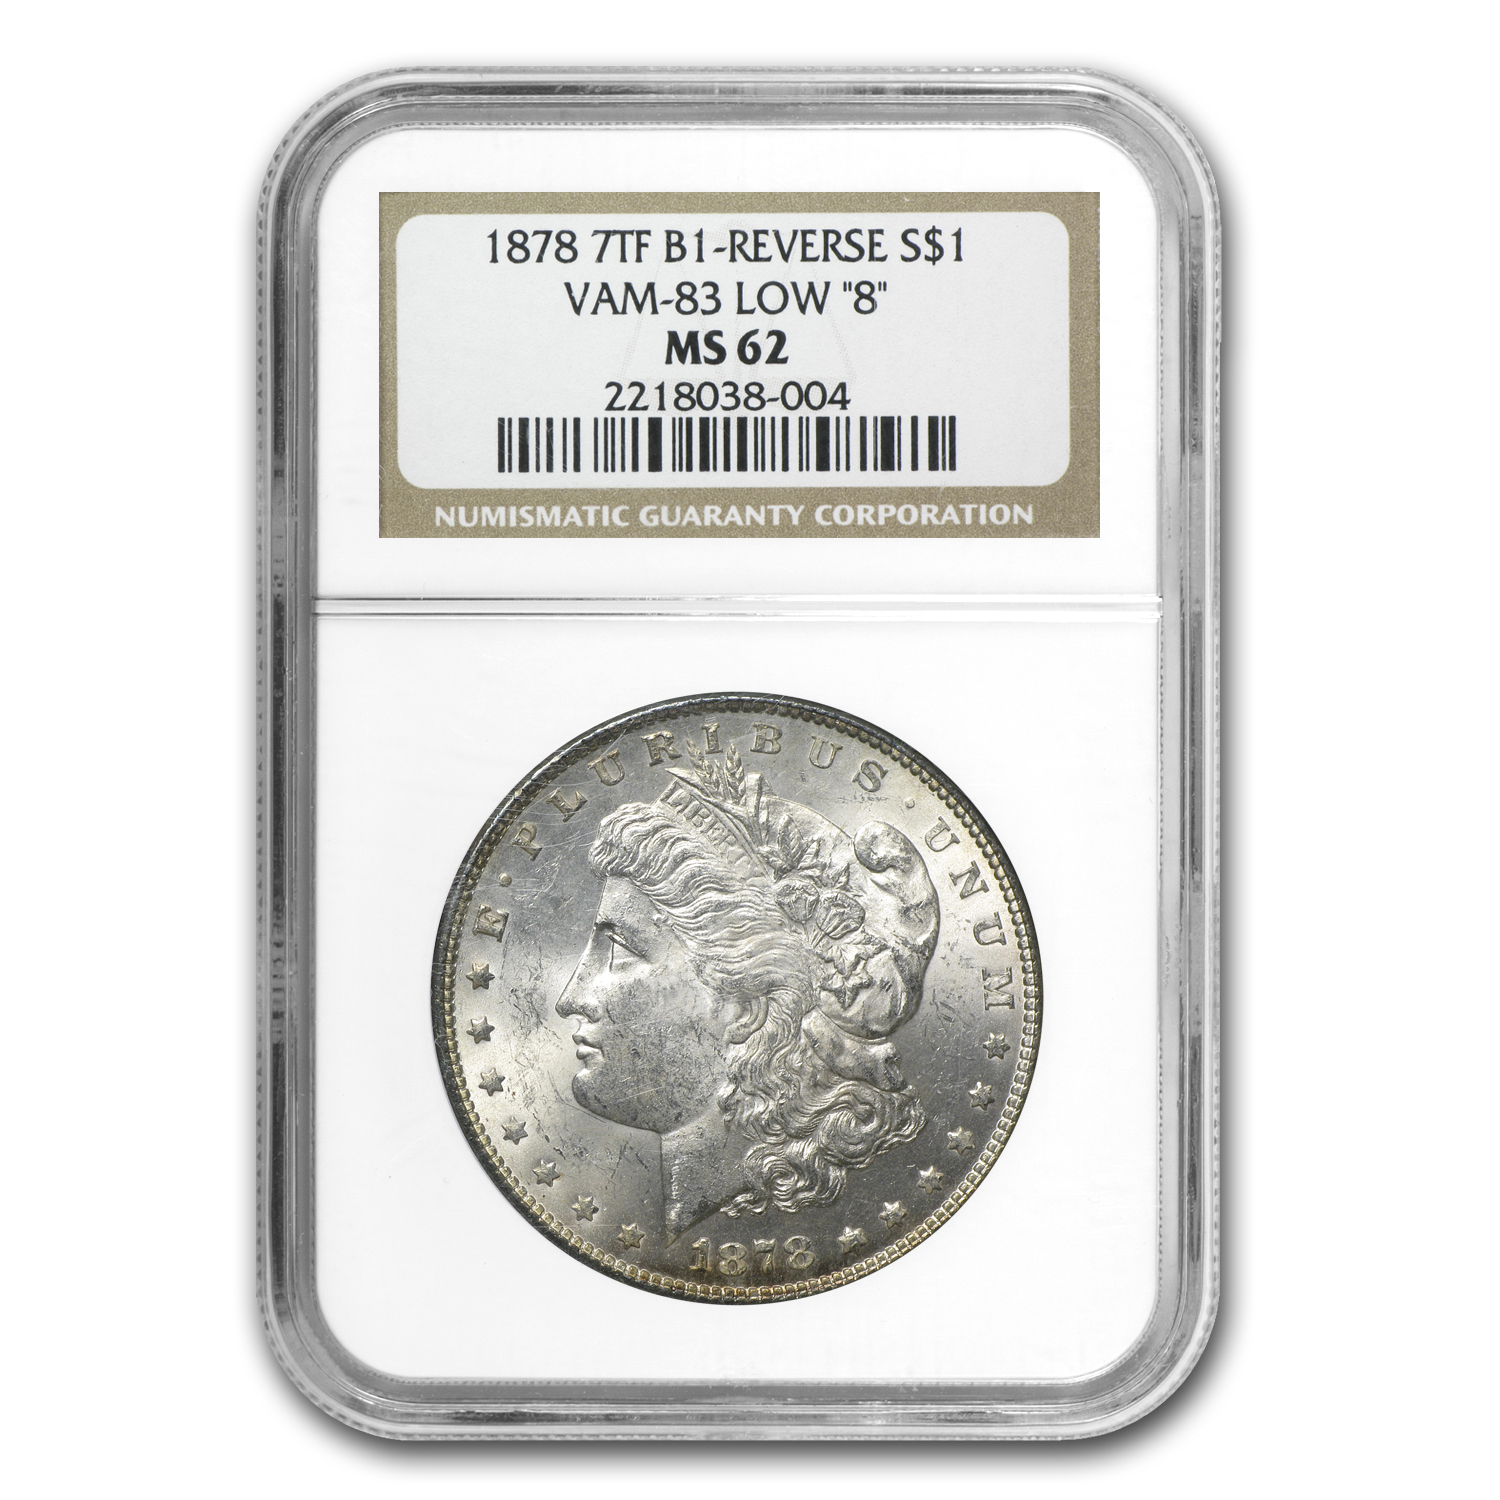 1878 Morgan Dollar 7 TF Rev of 78 MS-62 NGC (VAM-8, Low 8)